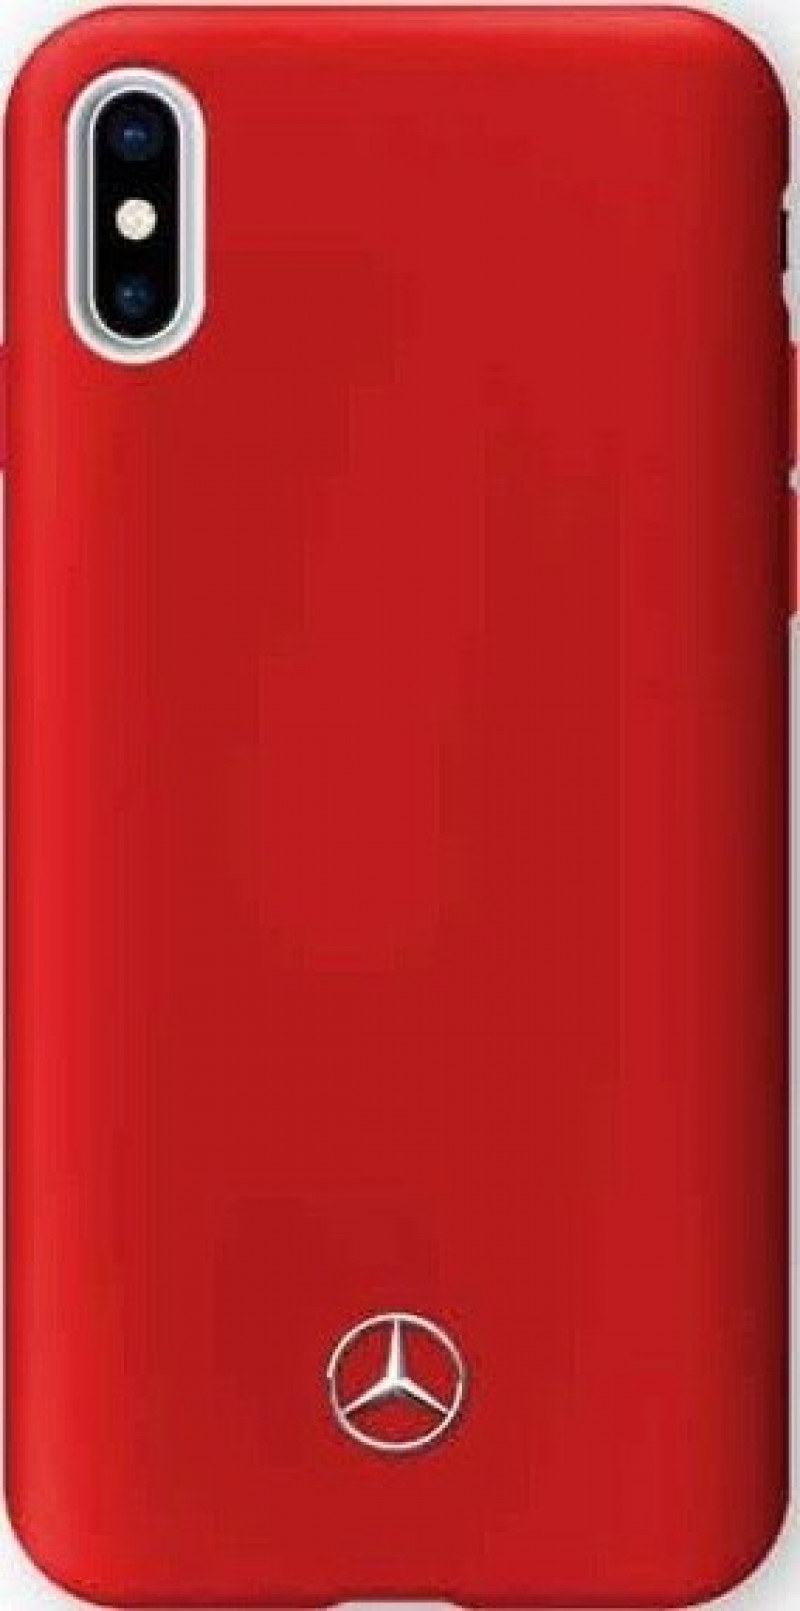 MEHCPXSILRE Mercedes TPU Silicone Case Lining Red pro iPhone X